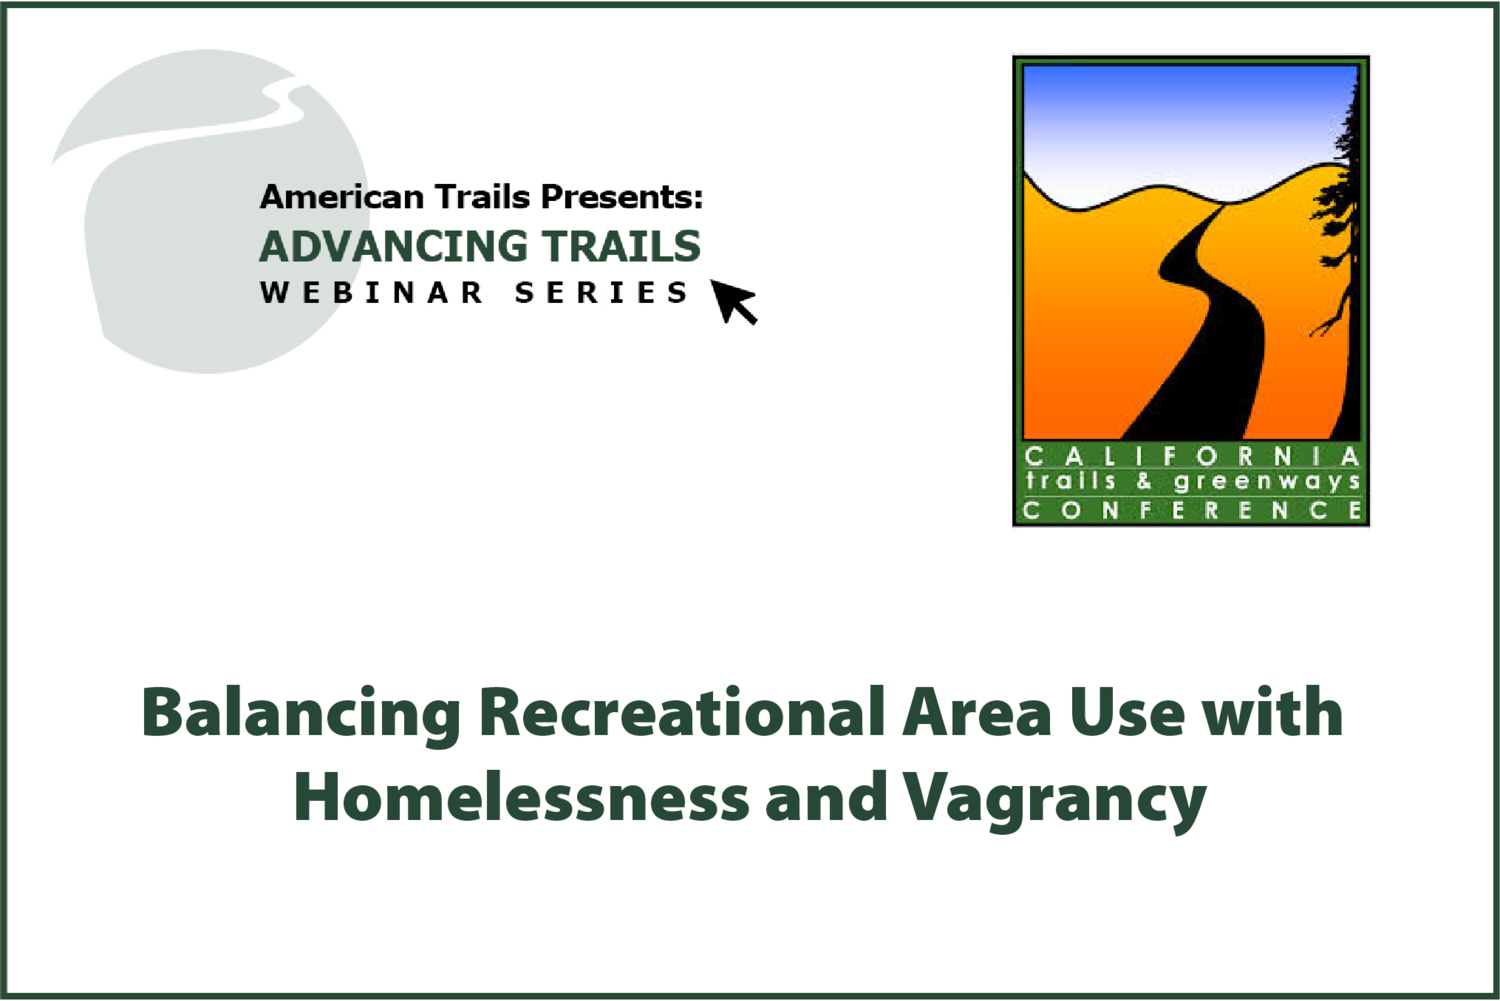 Balancing Recreational Area Use with Homelessness and Vagrancy (AUGUST 27, 2020)